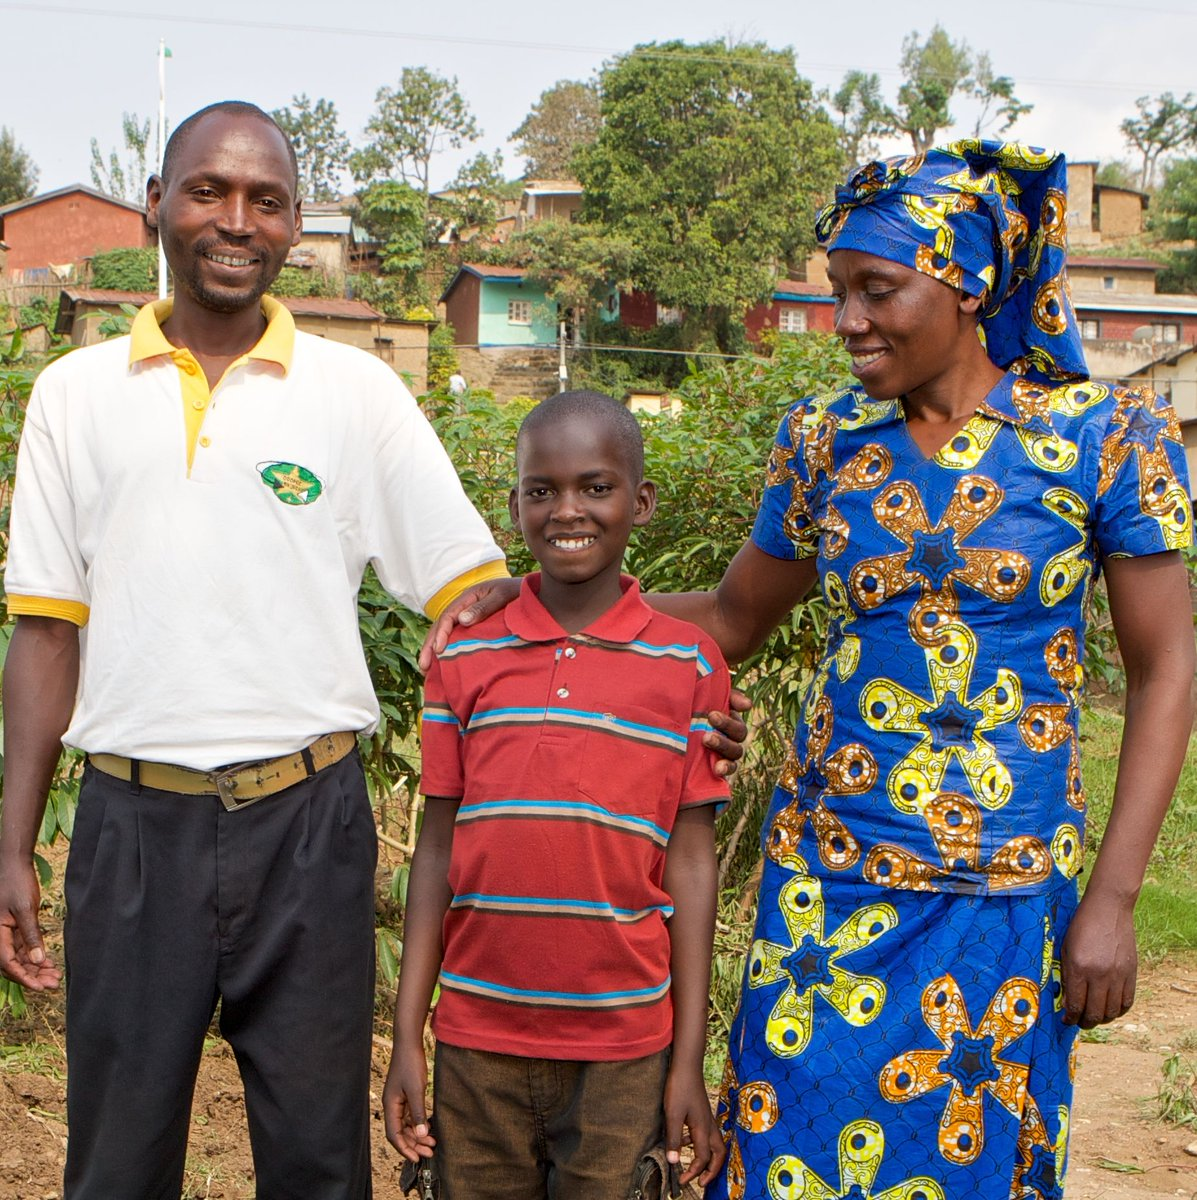 Today is #NationalAdoptionDay and we're thanking God for the families across who have stepped out in faith to adopt. These children are now sons and daughters! With the help of The PEACE Plan, Rwanda has gone from over 3,000 children living in orphanages to less than 200.